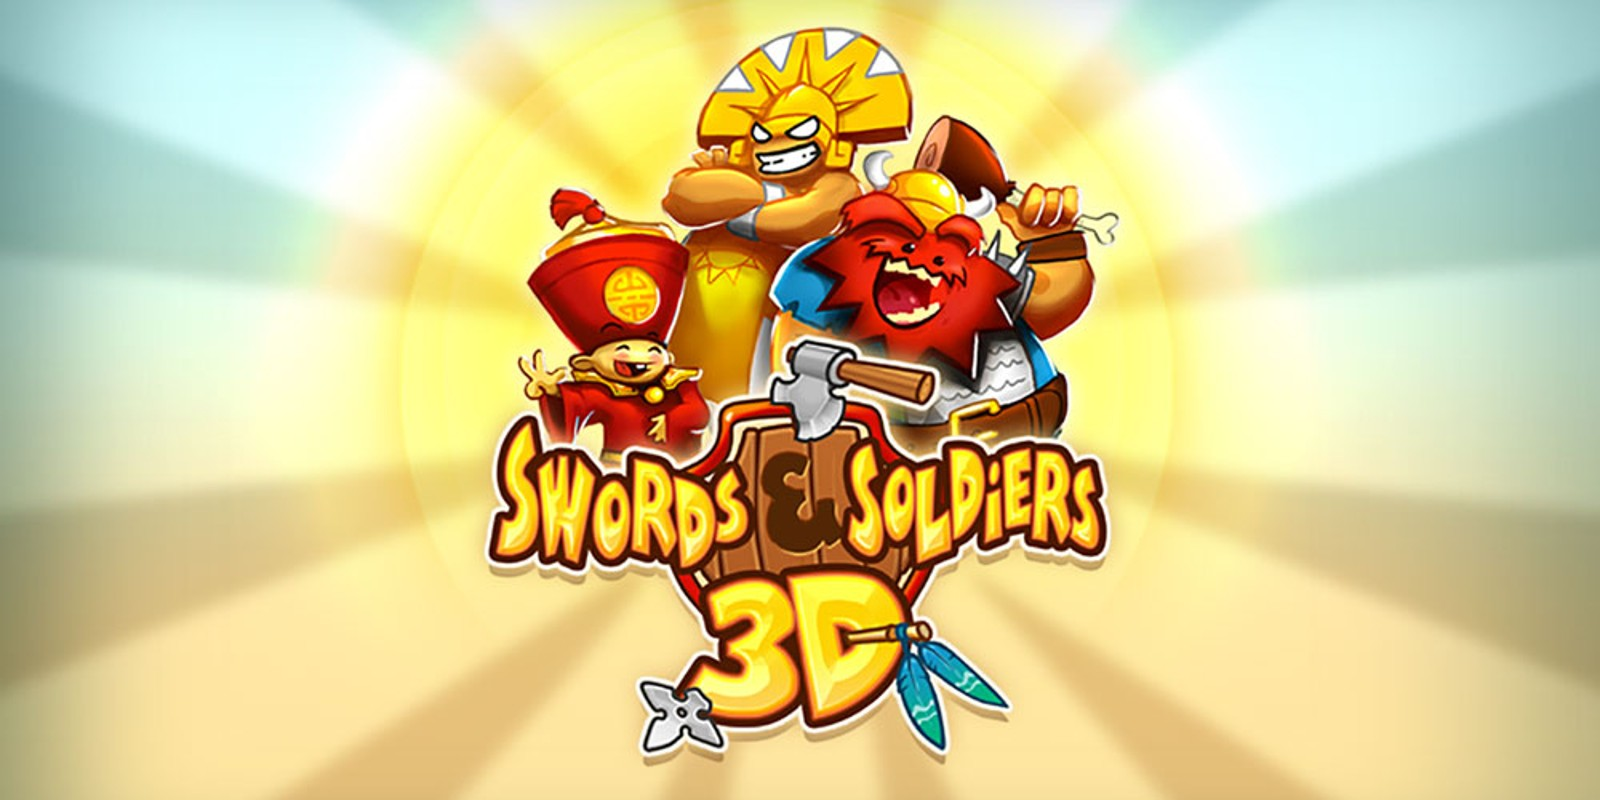 Swords & Soldiers 3D